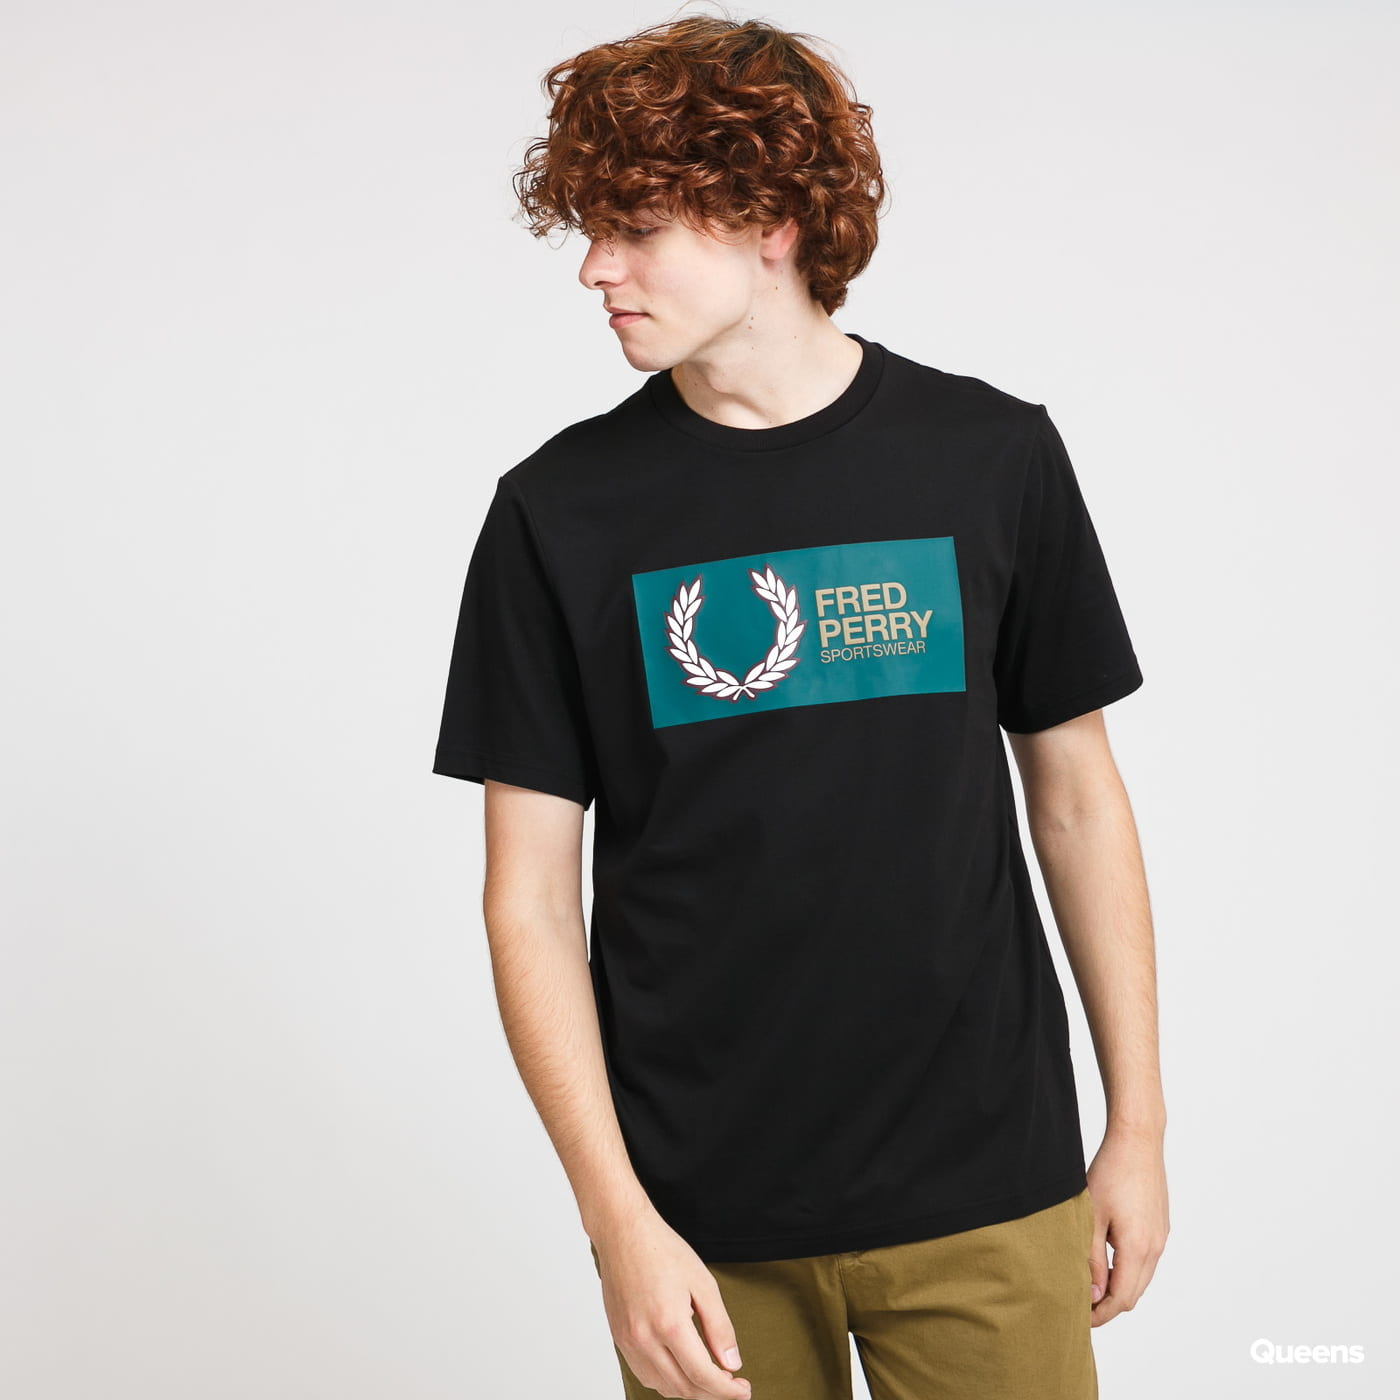 FRED PERRY Fred Perry Sportswear Tee černé